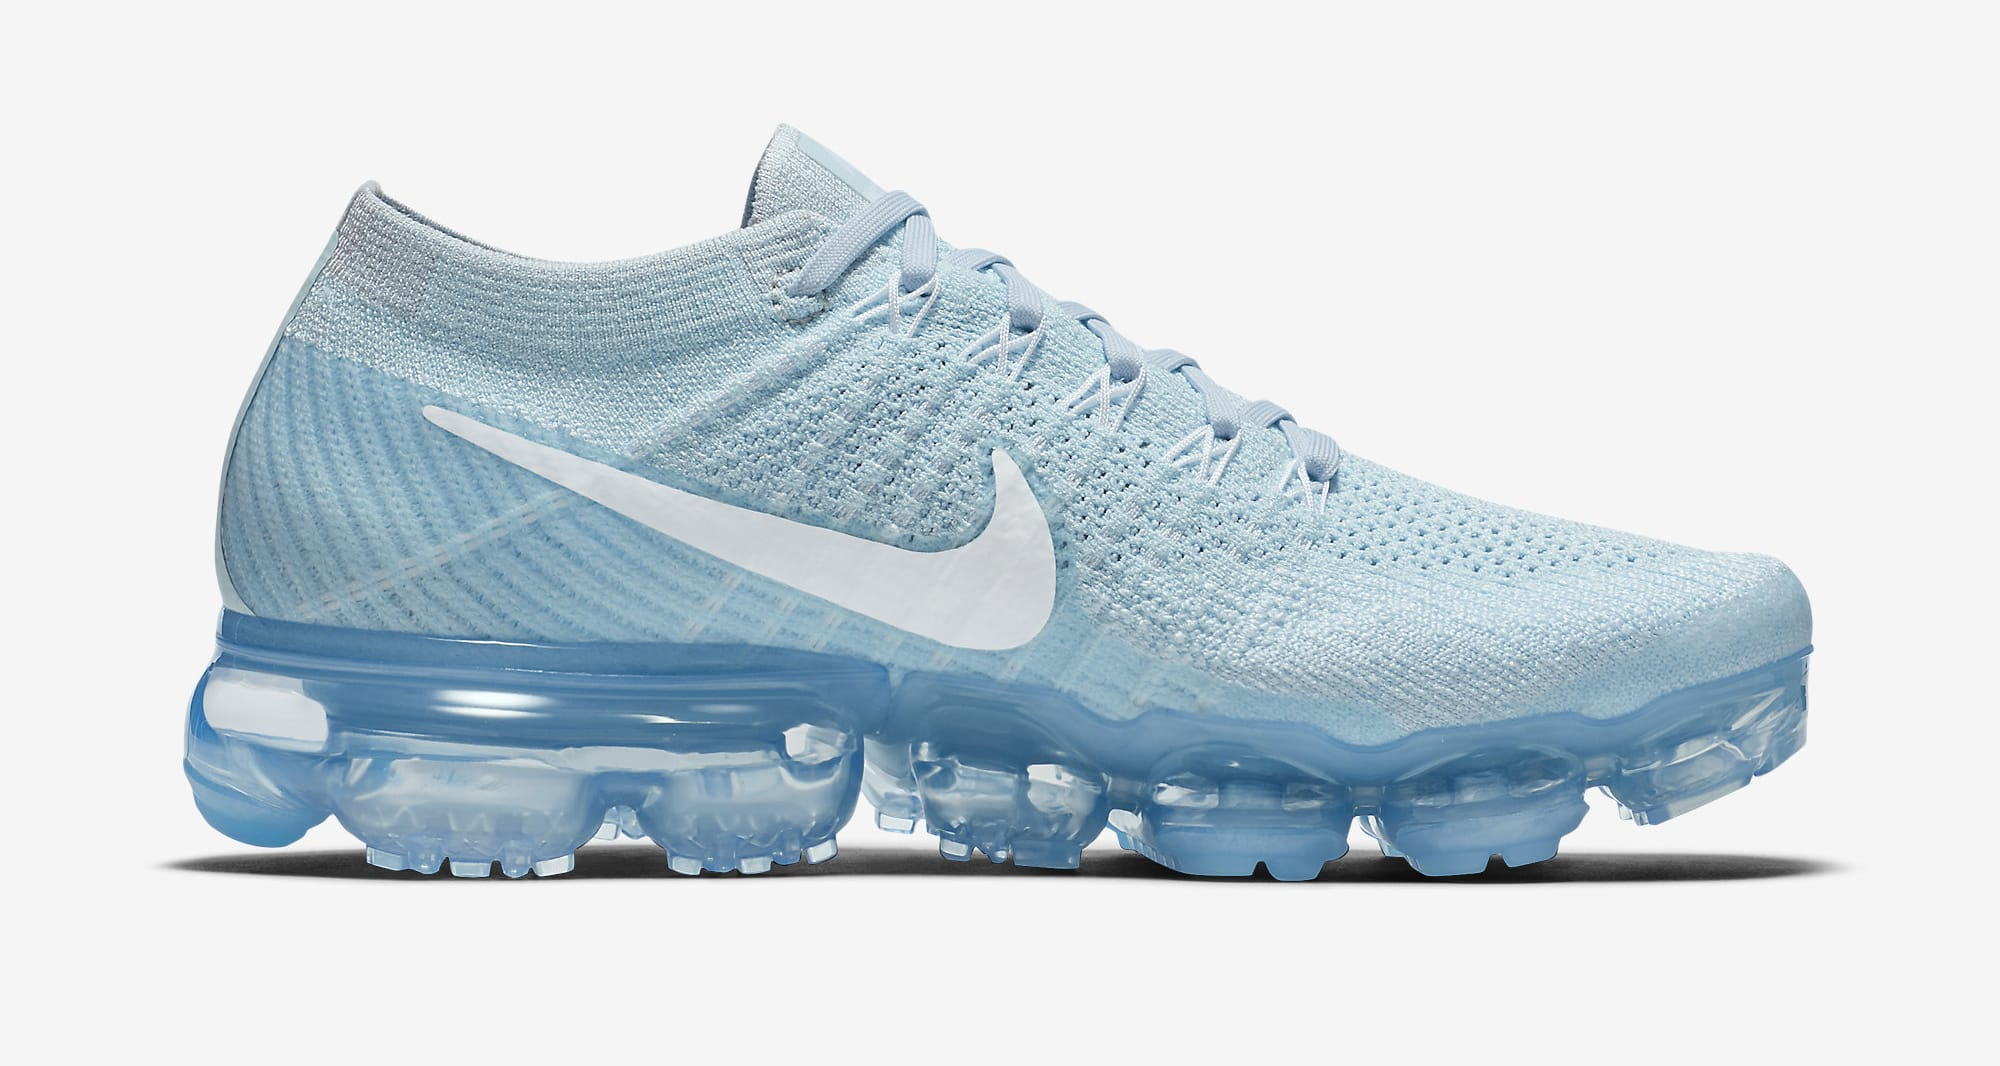 0a5a0f56d265f Buy Nike Cheap Air Vapormax Flyknit Running Shoes Sale Online 2018